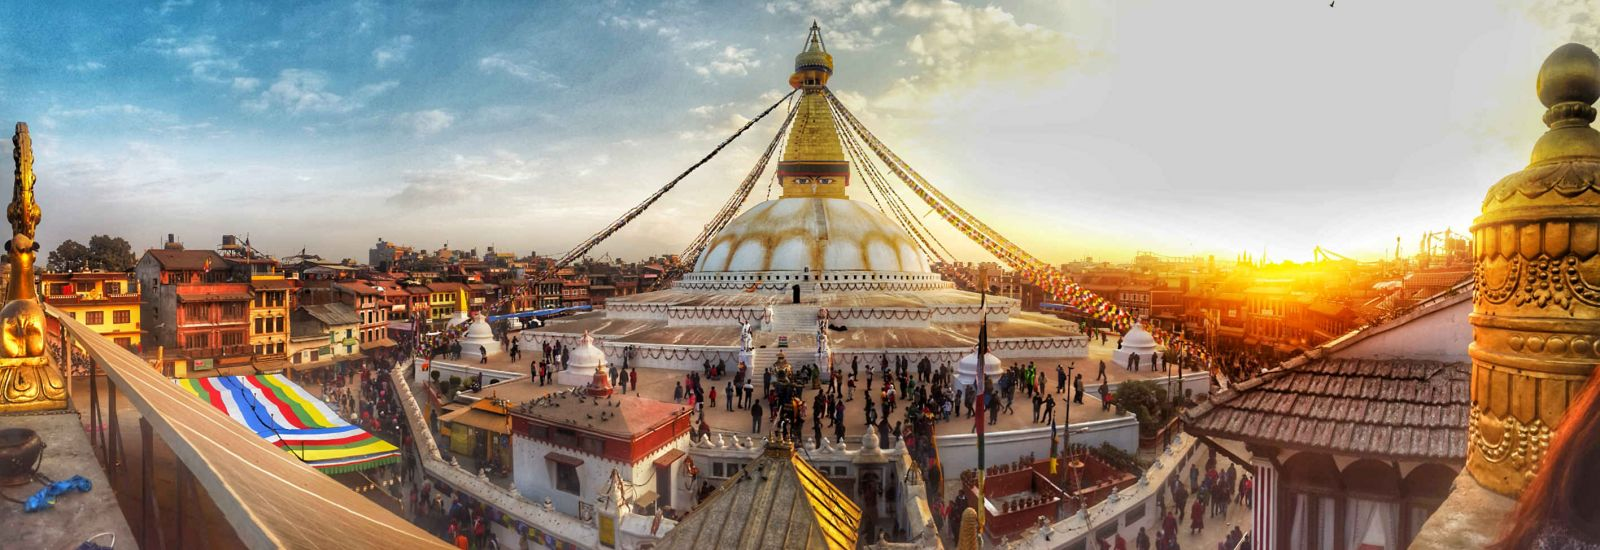 The dome-shaped Boudhanath Stupa monument in Nepal, with streamers flying from its steeple.